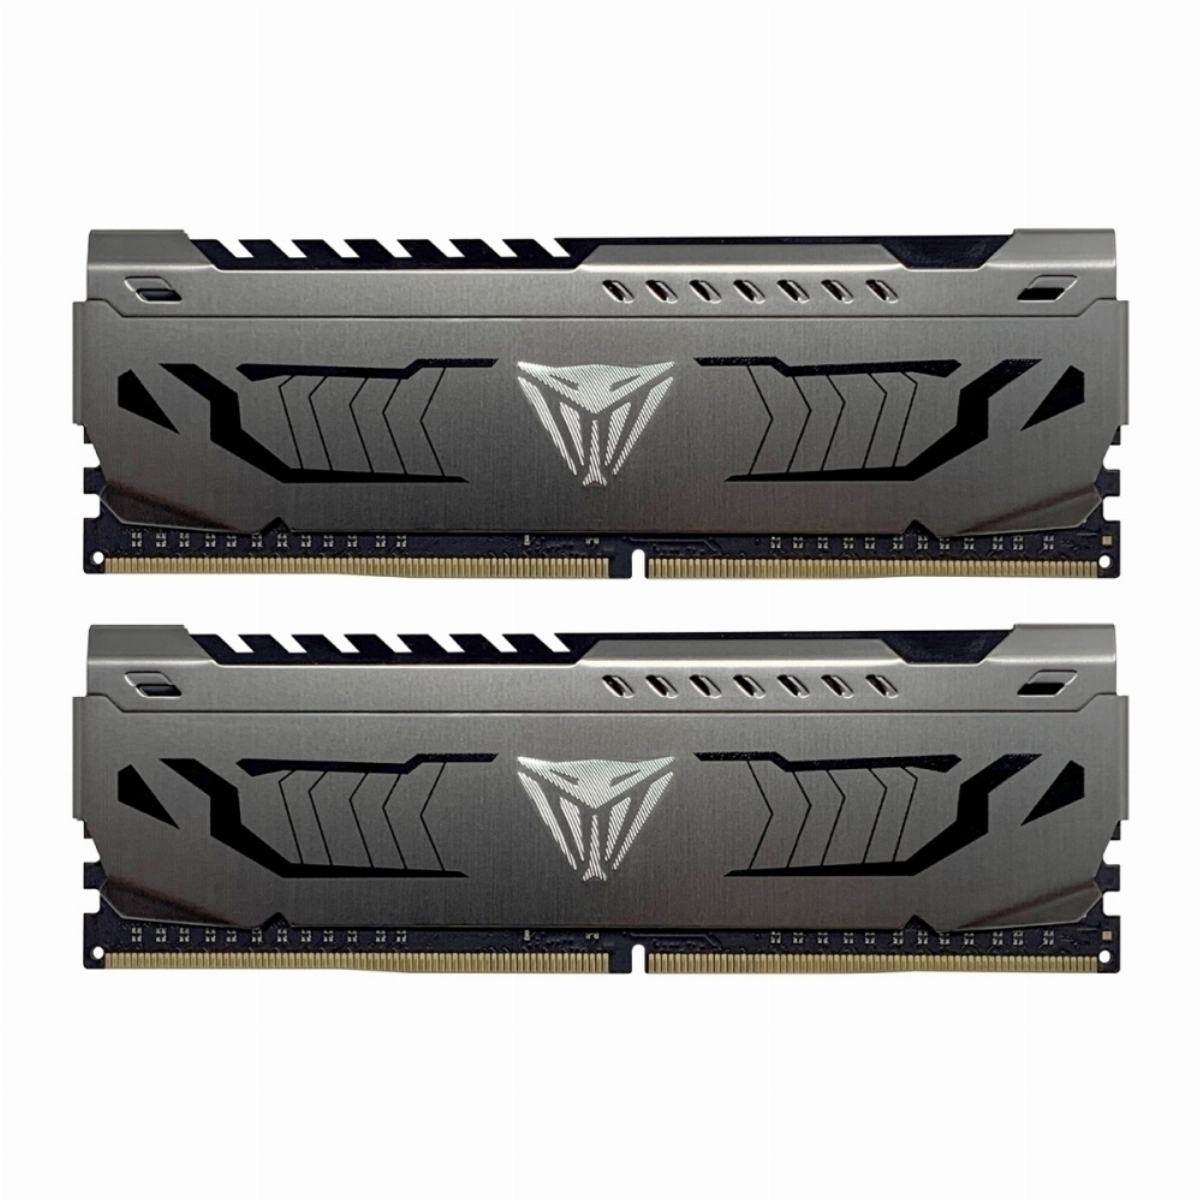 Памет Patriot Viper Steel 64GB (2x32GB) 3200Mhz DDR4 CL16